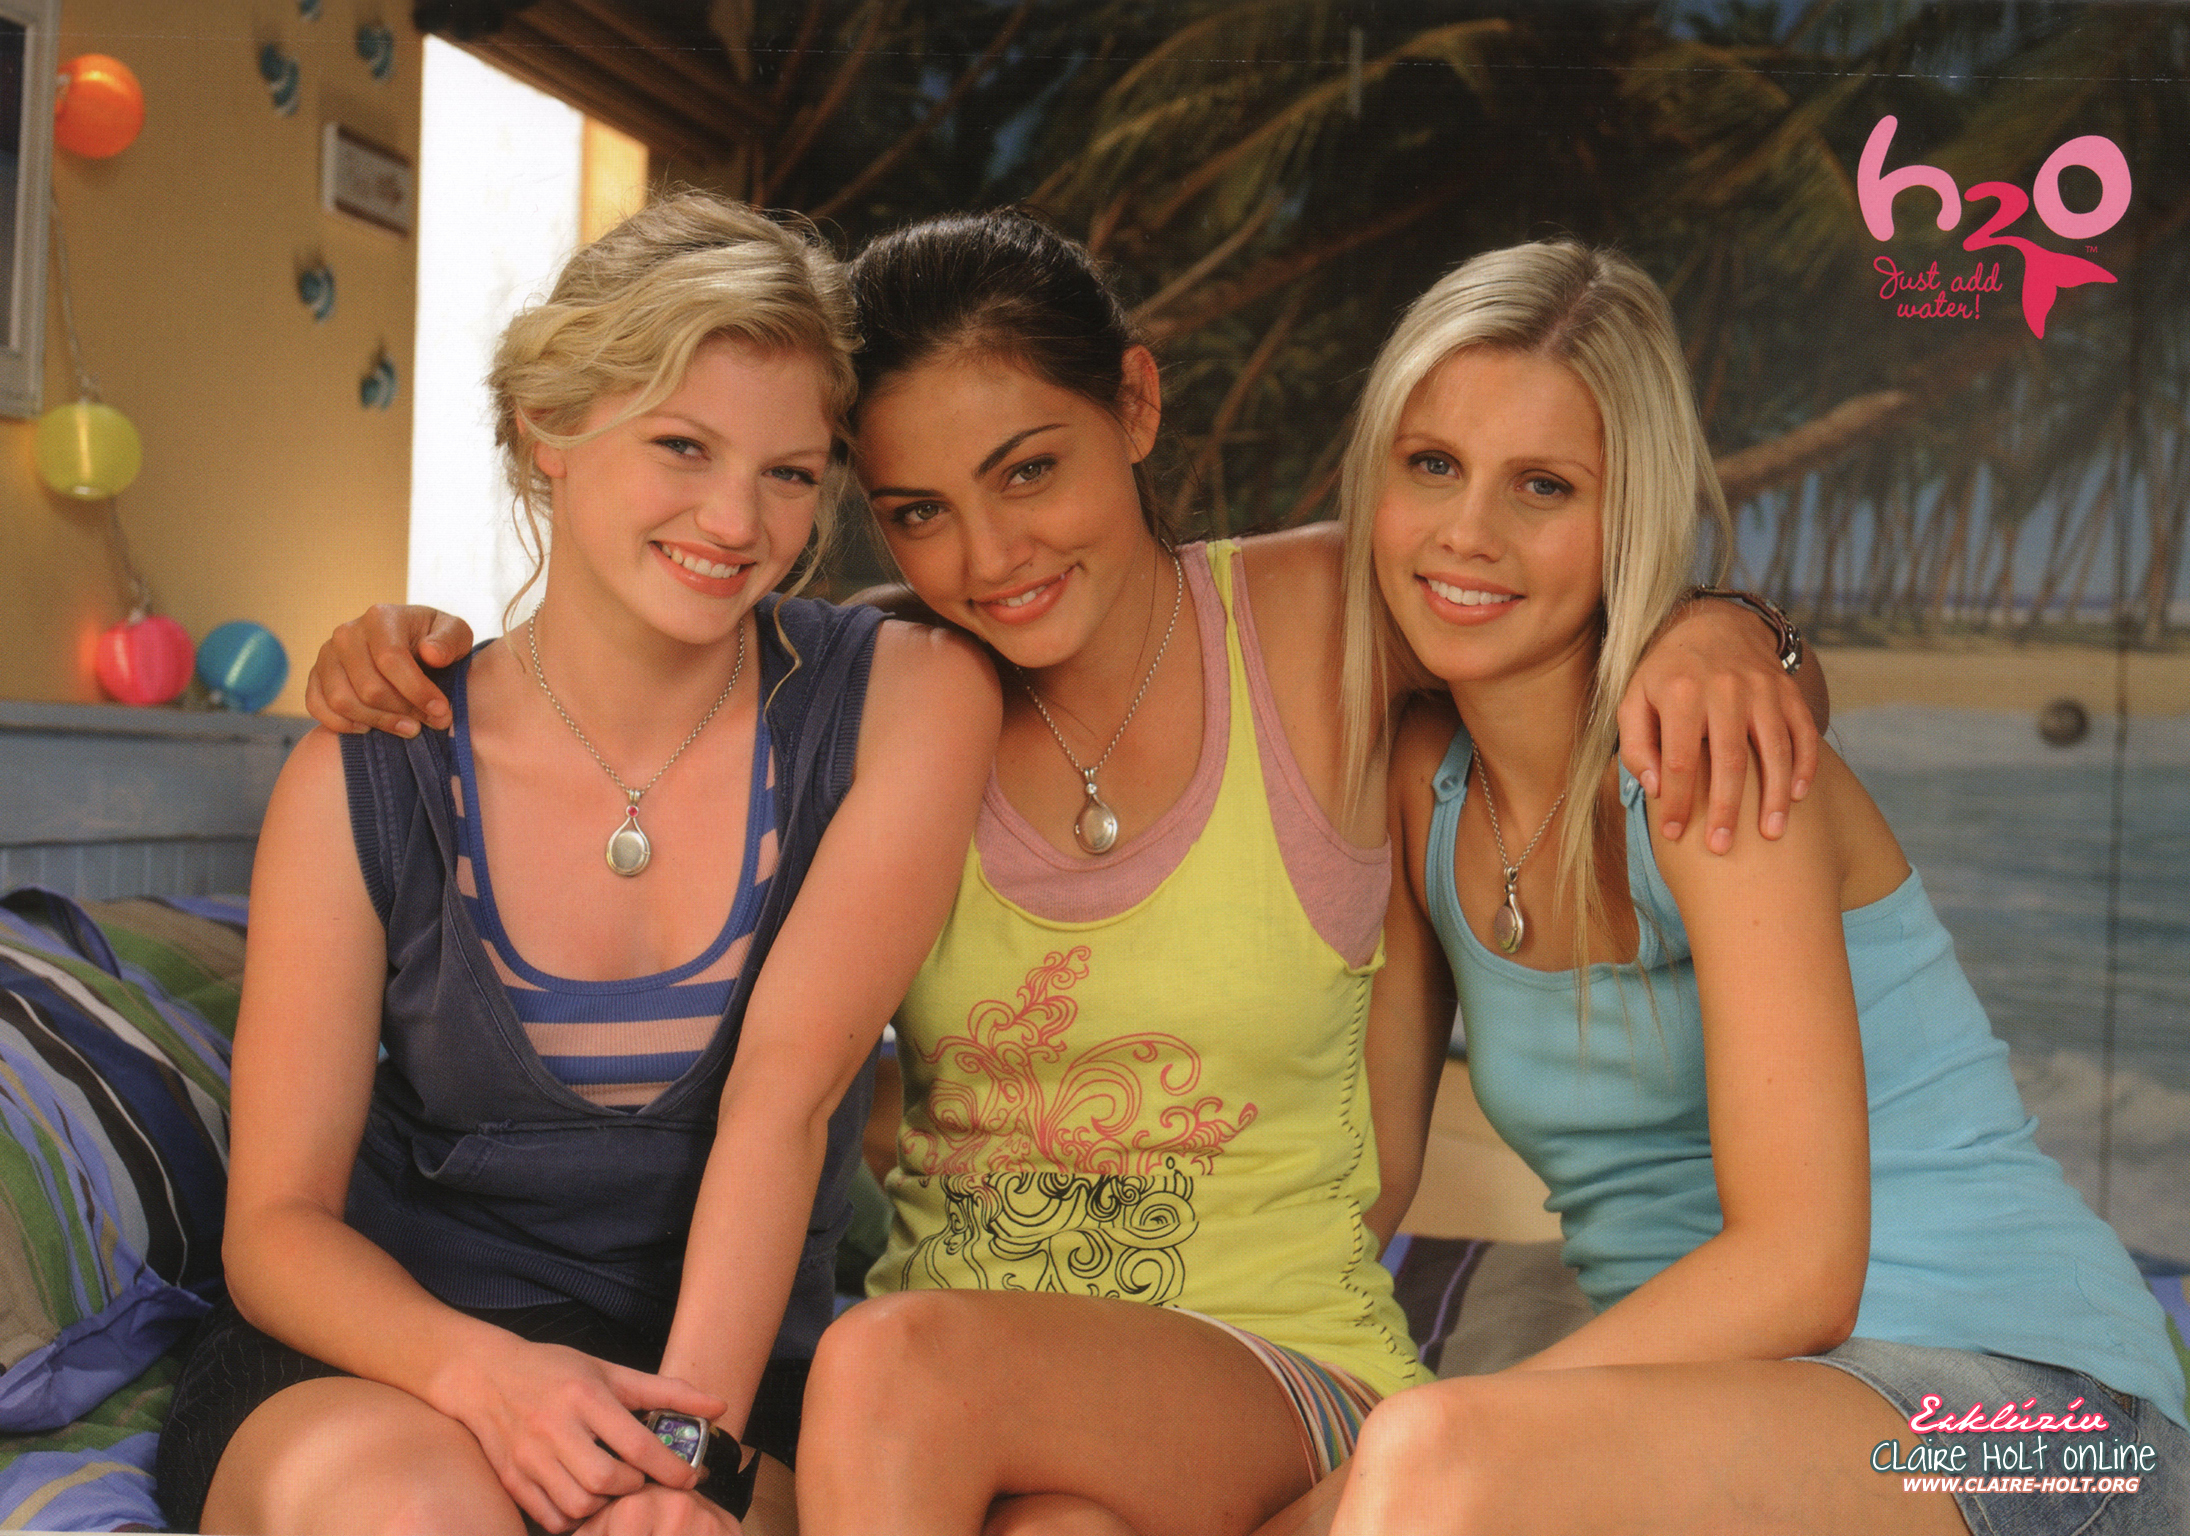 Carbia,Pheobe and Claire